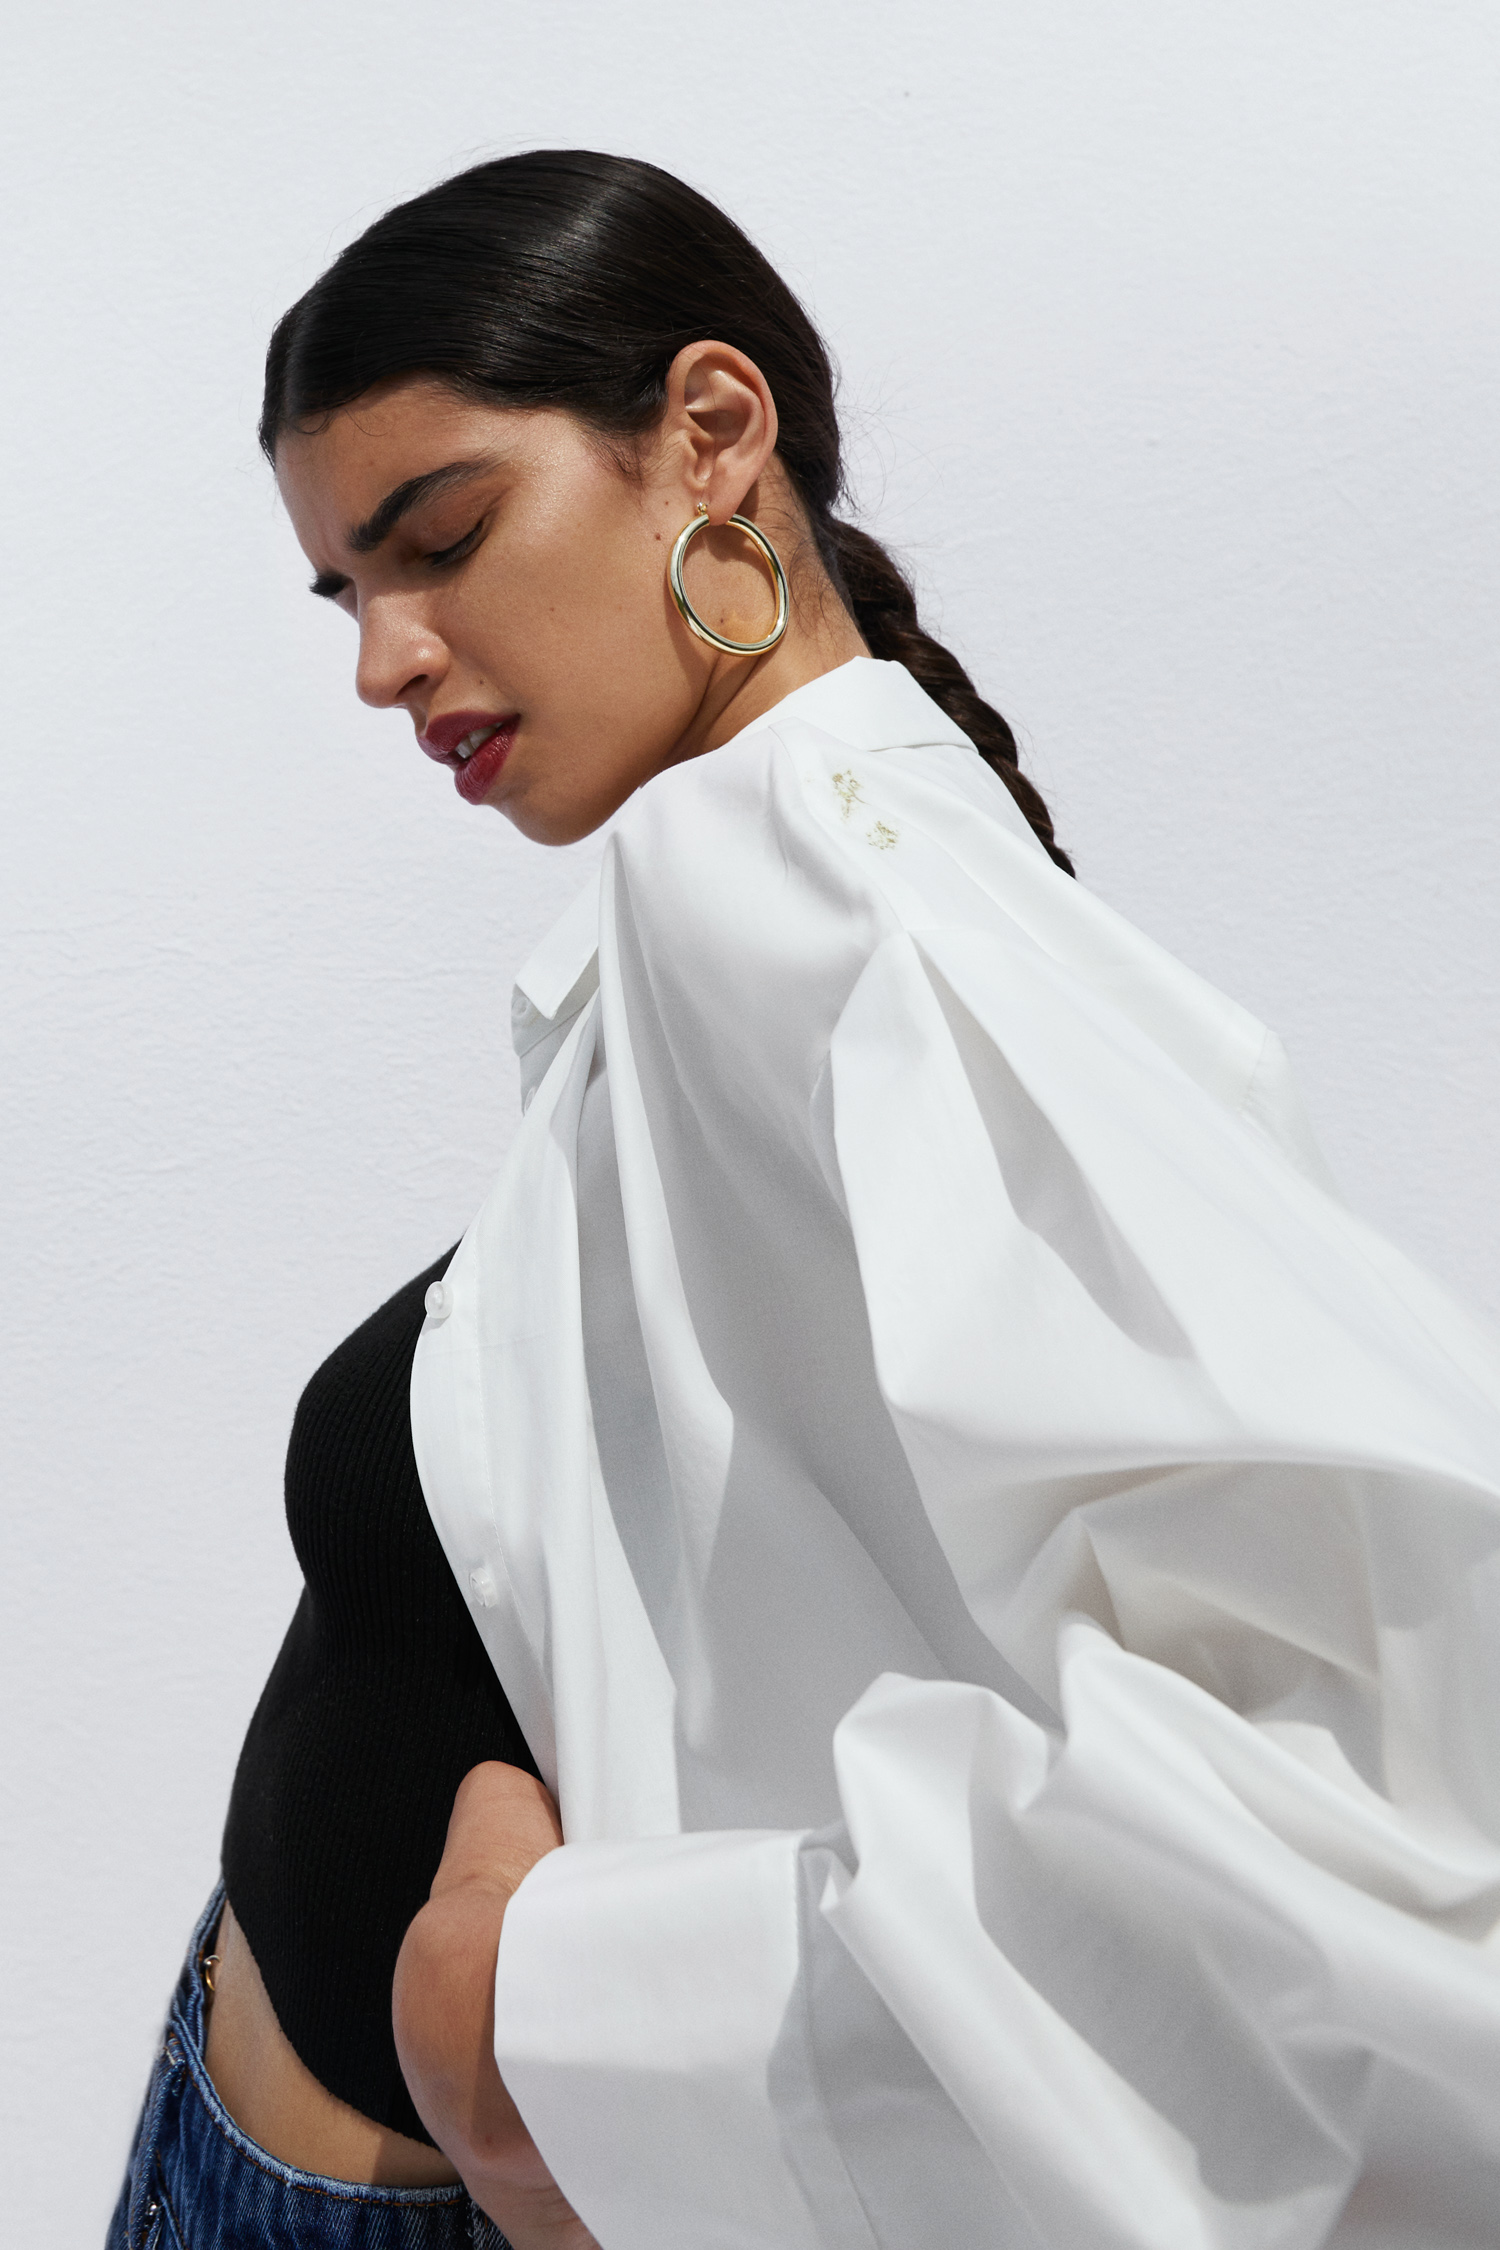 EDT_SS21_Trend_Shirting_Look2 1_FINAL